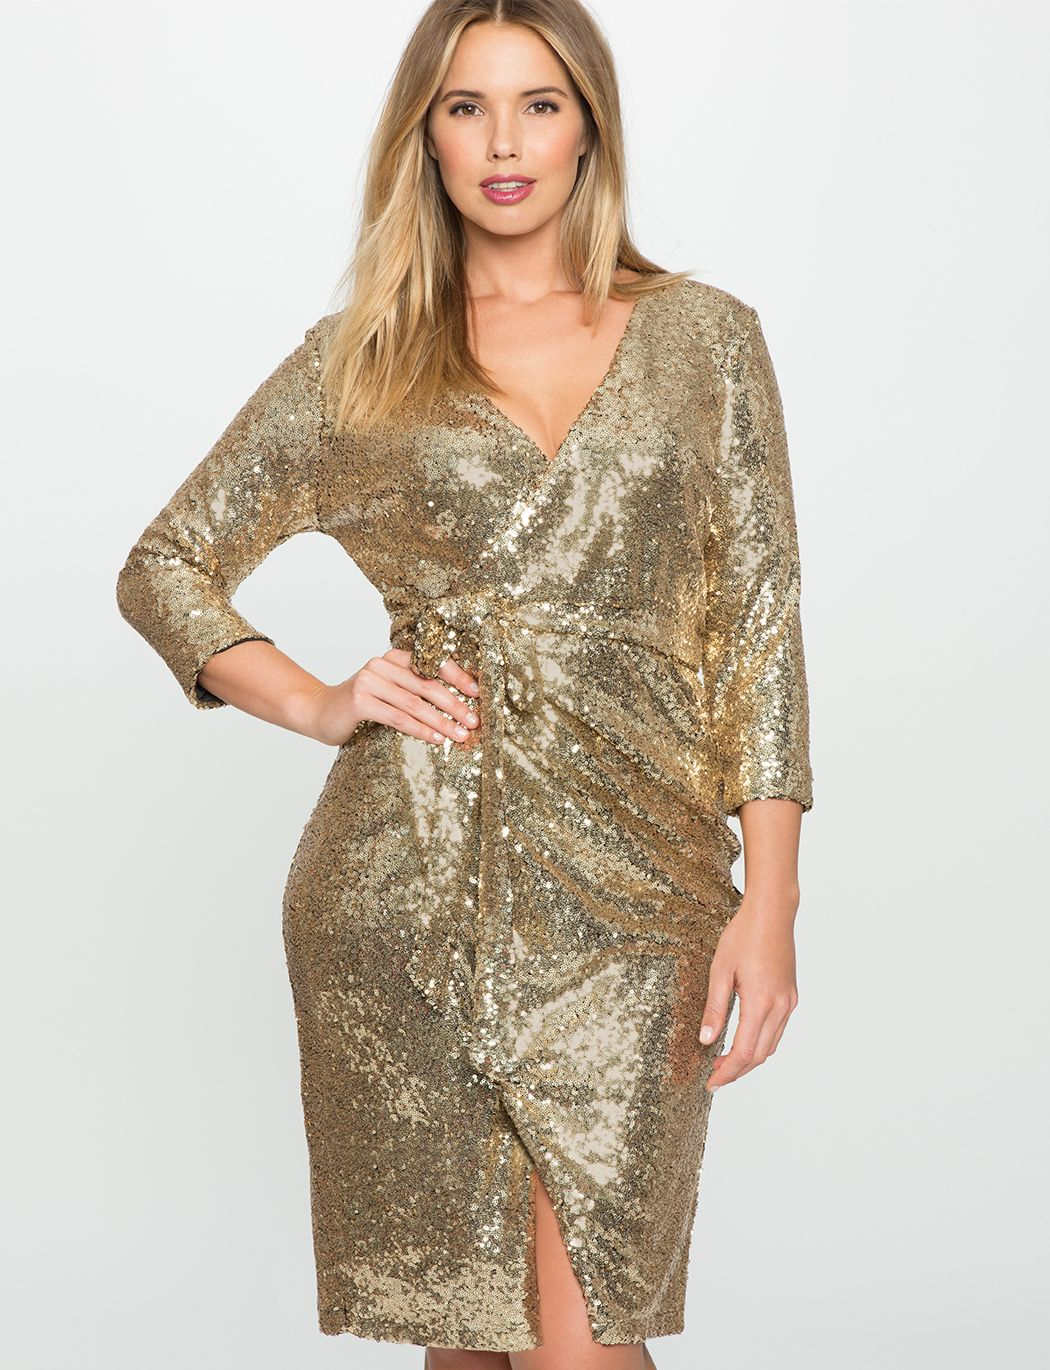 Sequin Size dresses forecasting to wear in spring in 2019